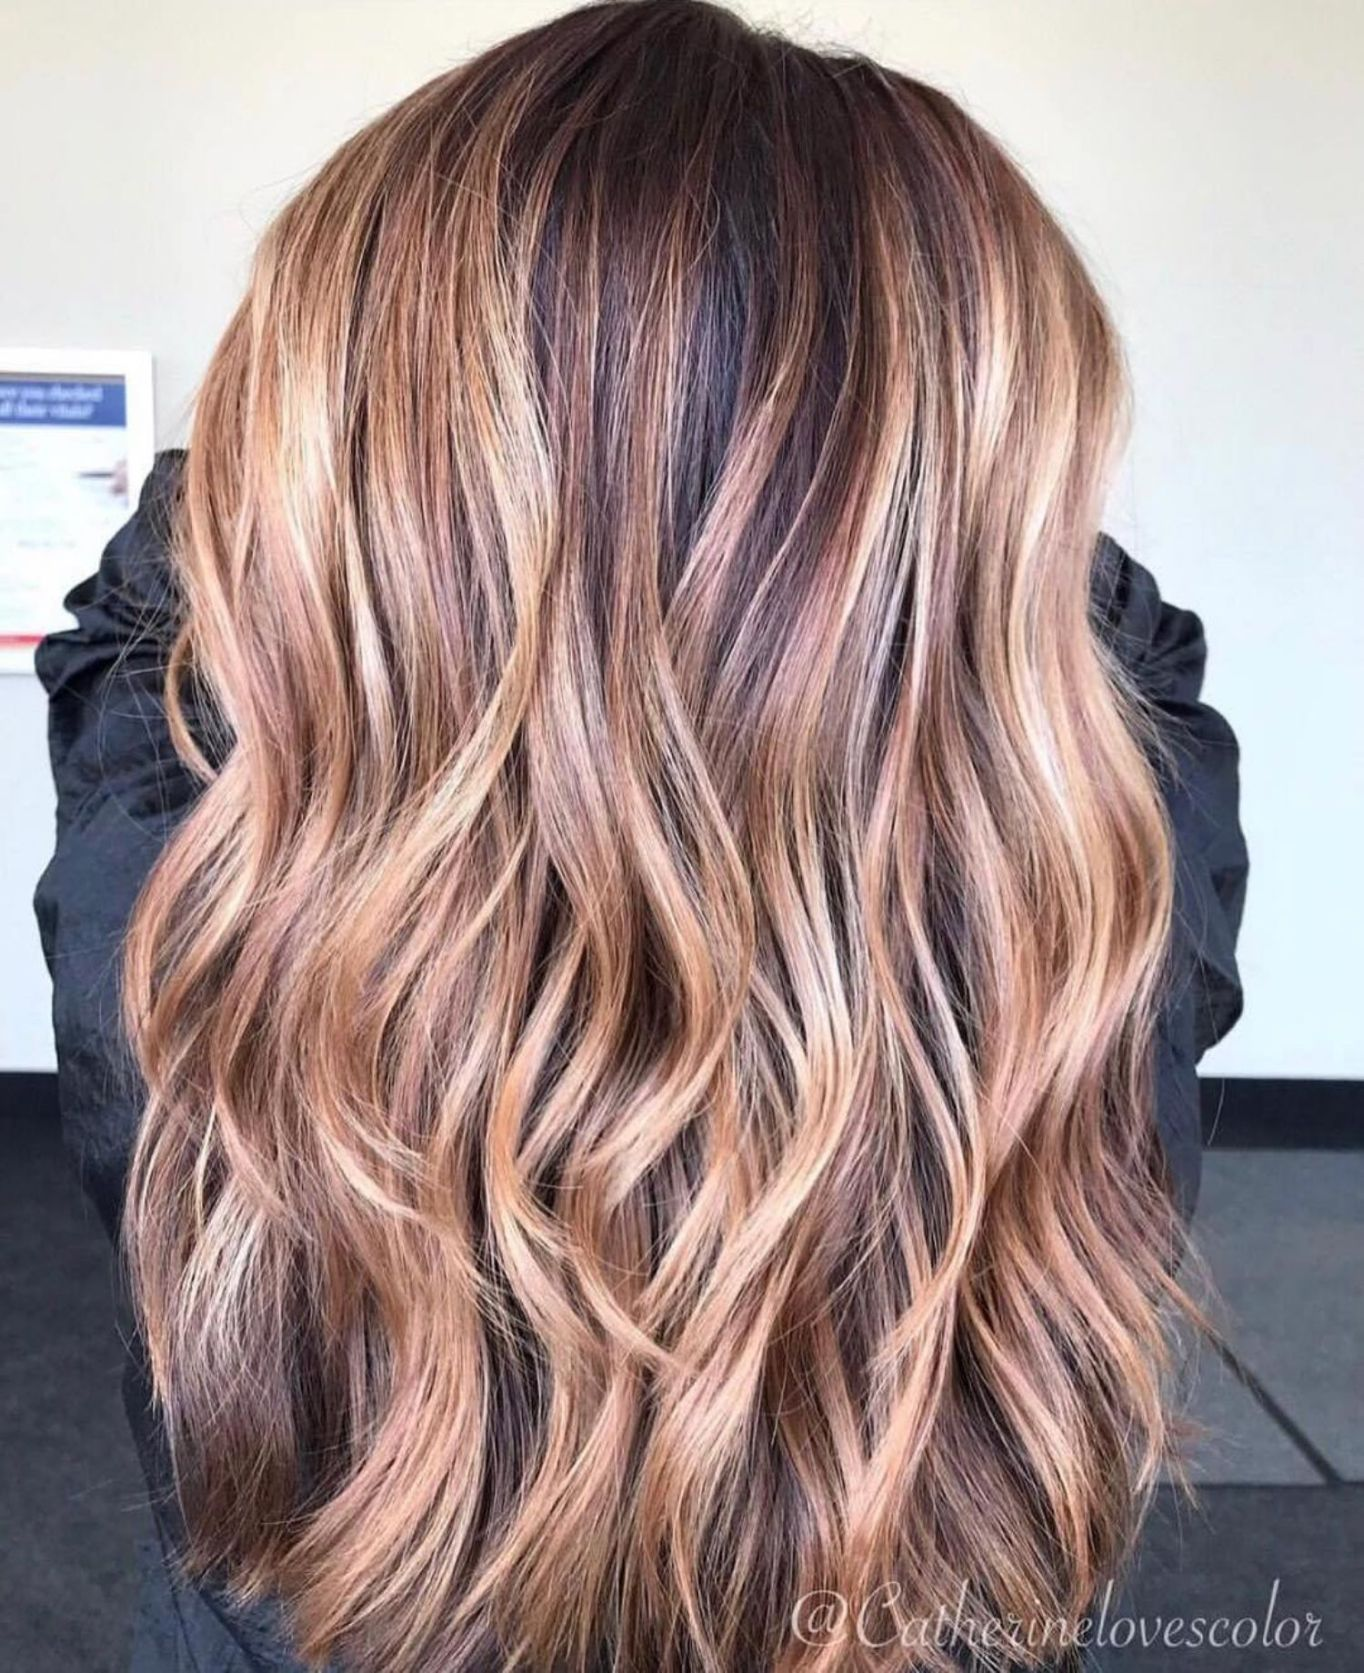 60 Looks With Caramel Highlights On Brown And Dark Brown Hair Hair Color Caramel Dark Hair With Highlights Caramel Balayage